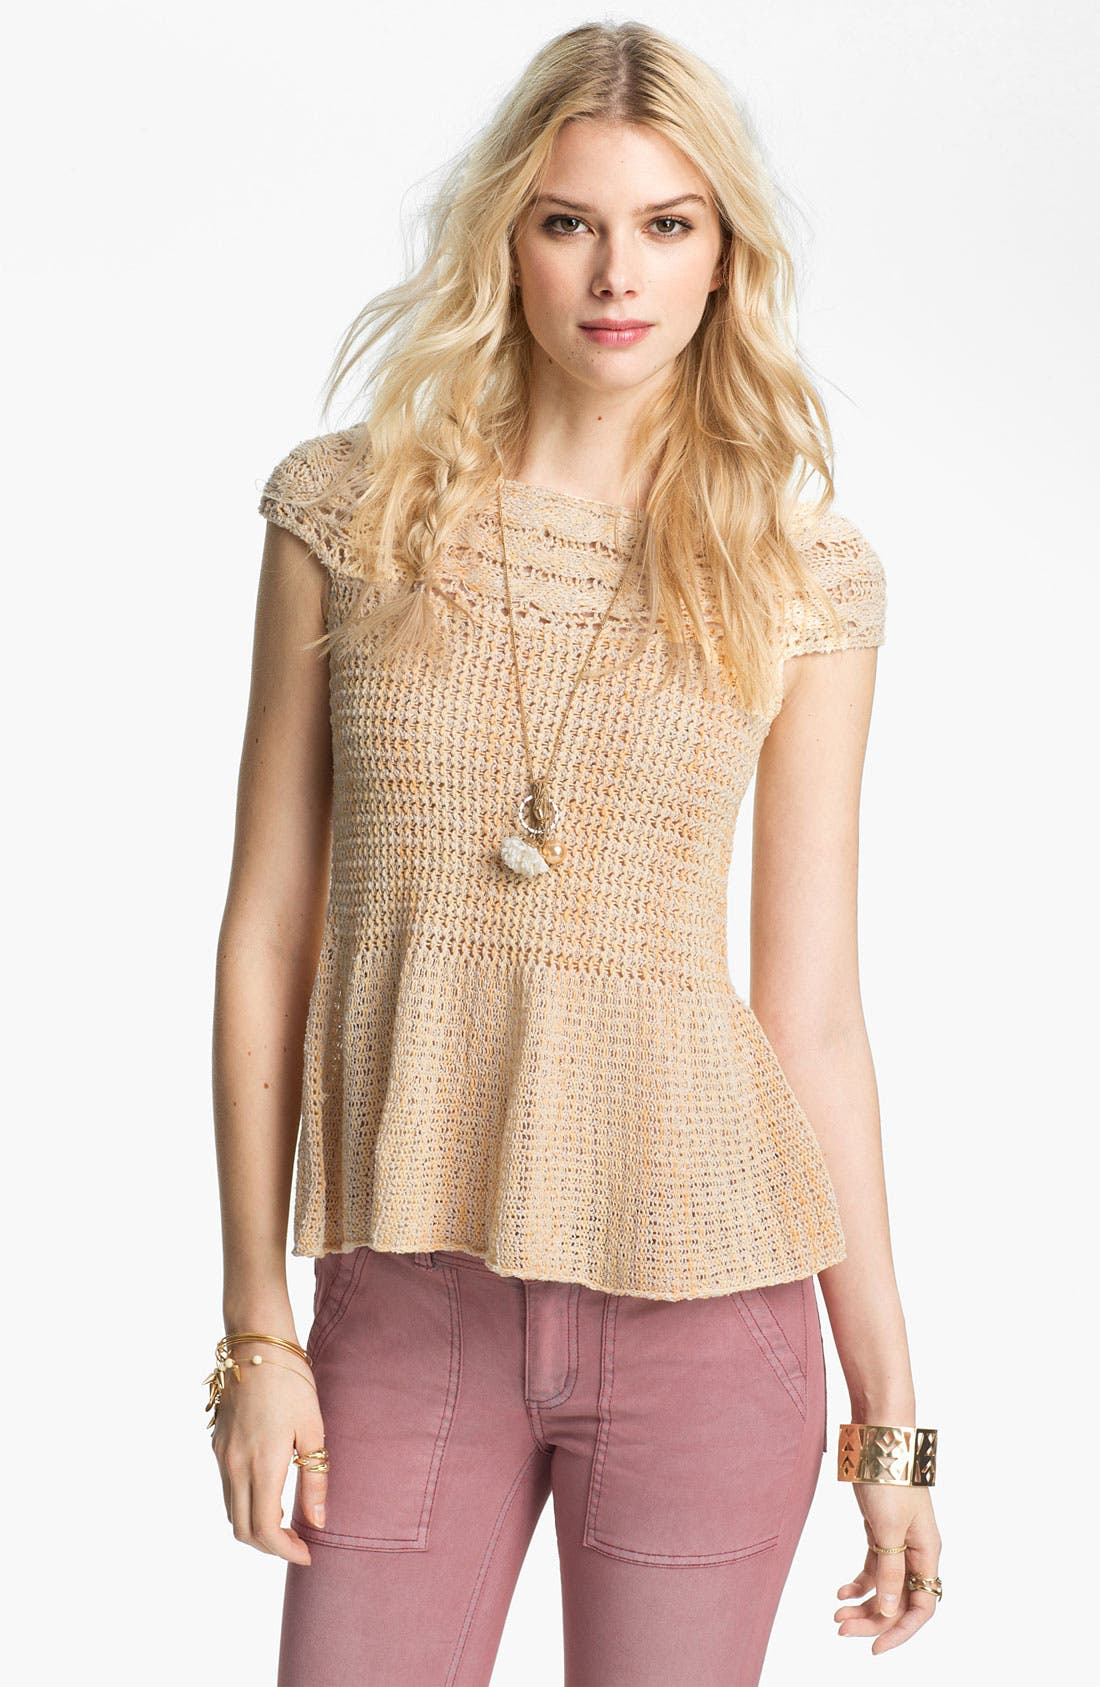 Alternate Image 1 Selected - Free People 'Lollipop' Crochet Peplum Top